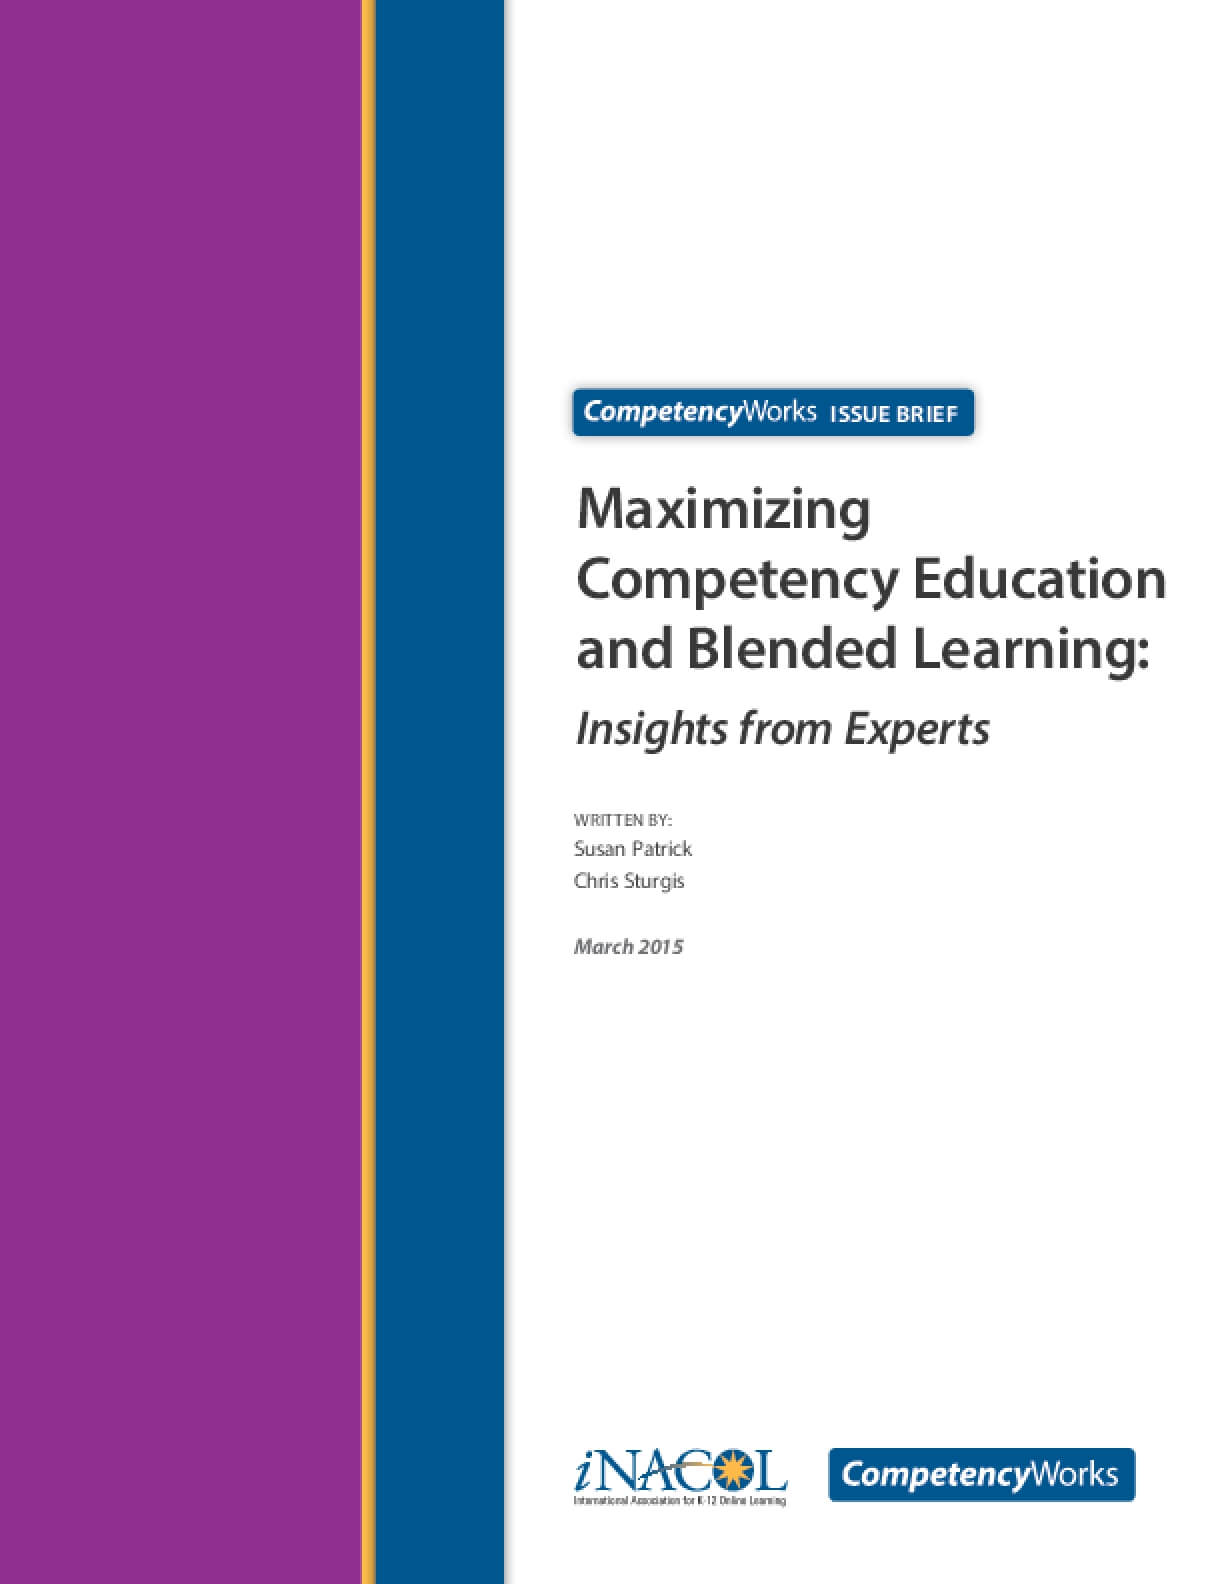 Maximizing Competency Education and Blended Learning: Insights from Experts